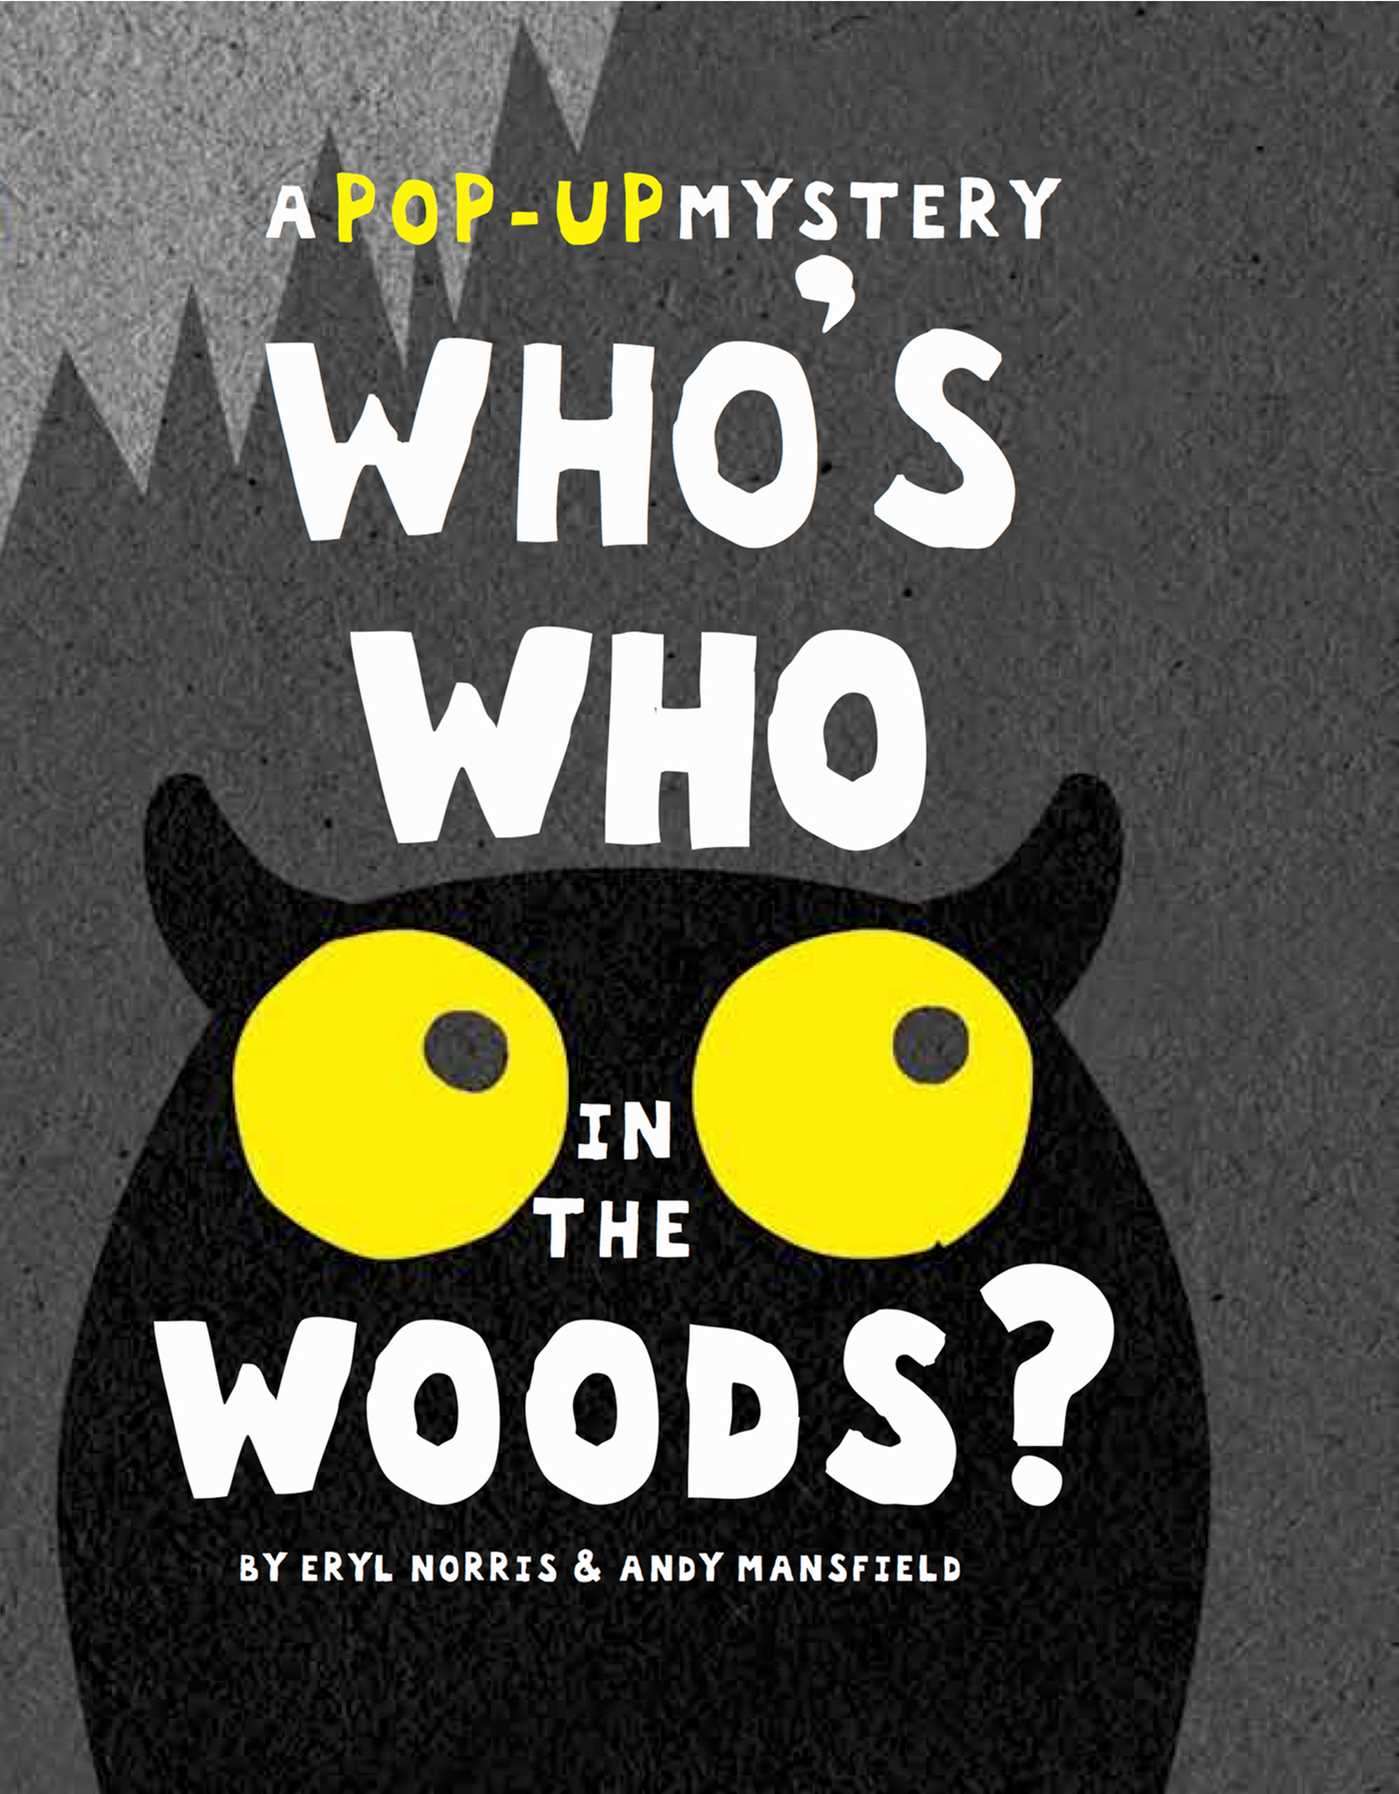 Whos who in the woods 9781499801408 hr